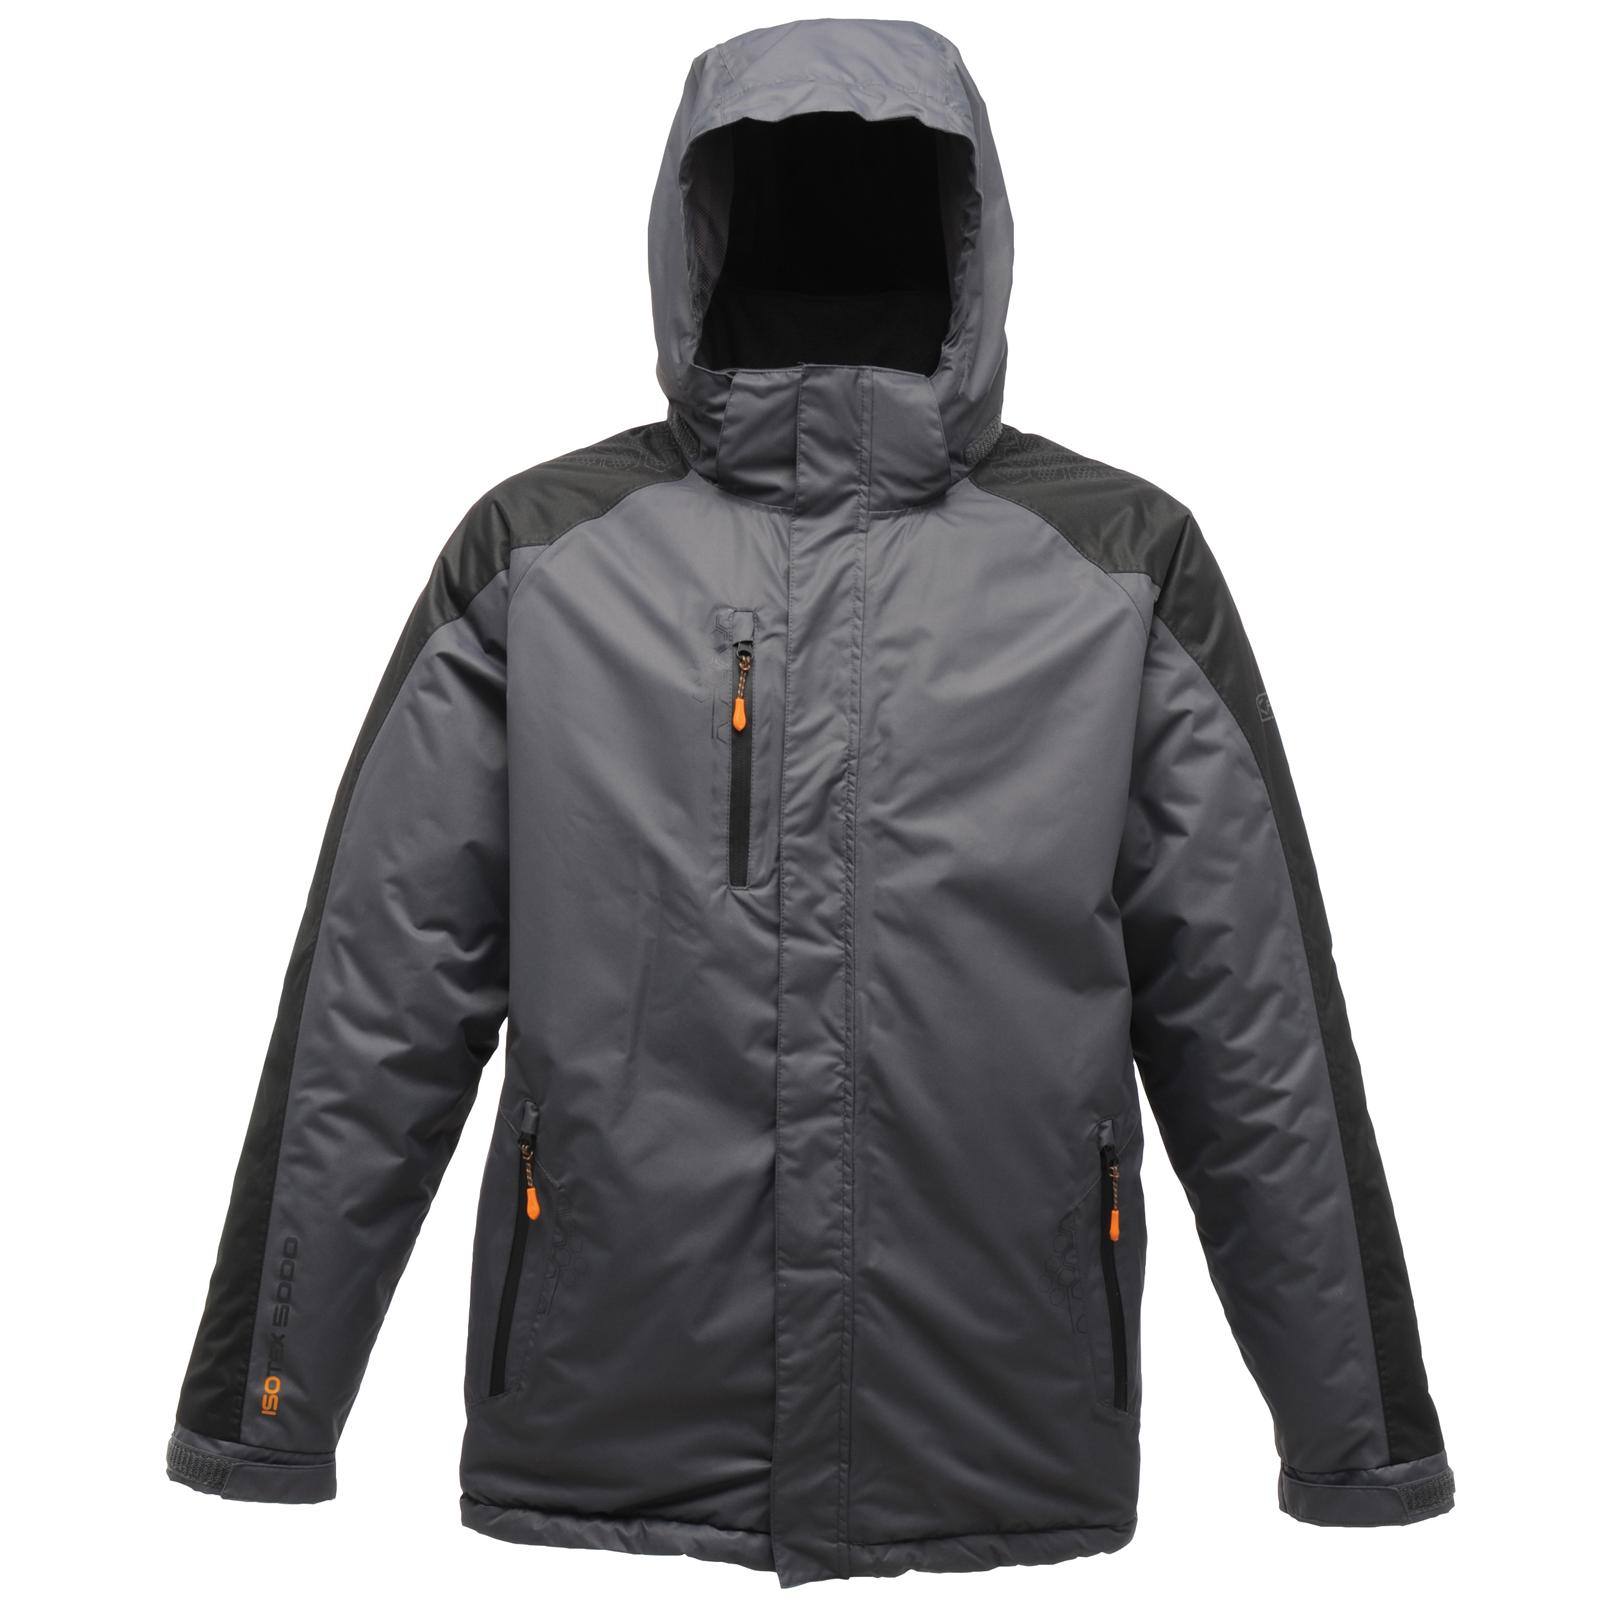 New REGATTA Mens Work Casual X-Pro Marauder Waterproof Jacket 2